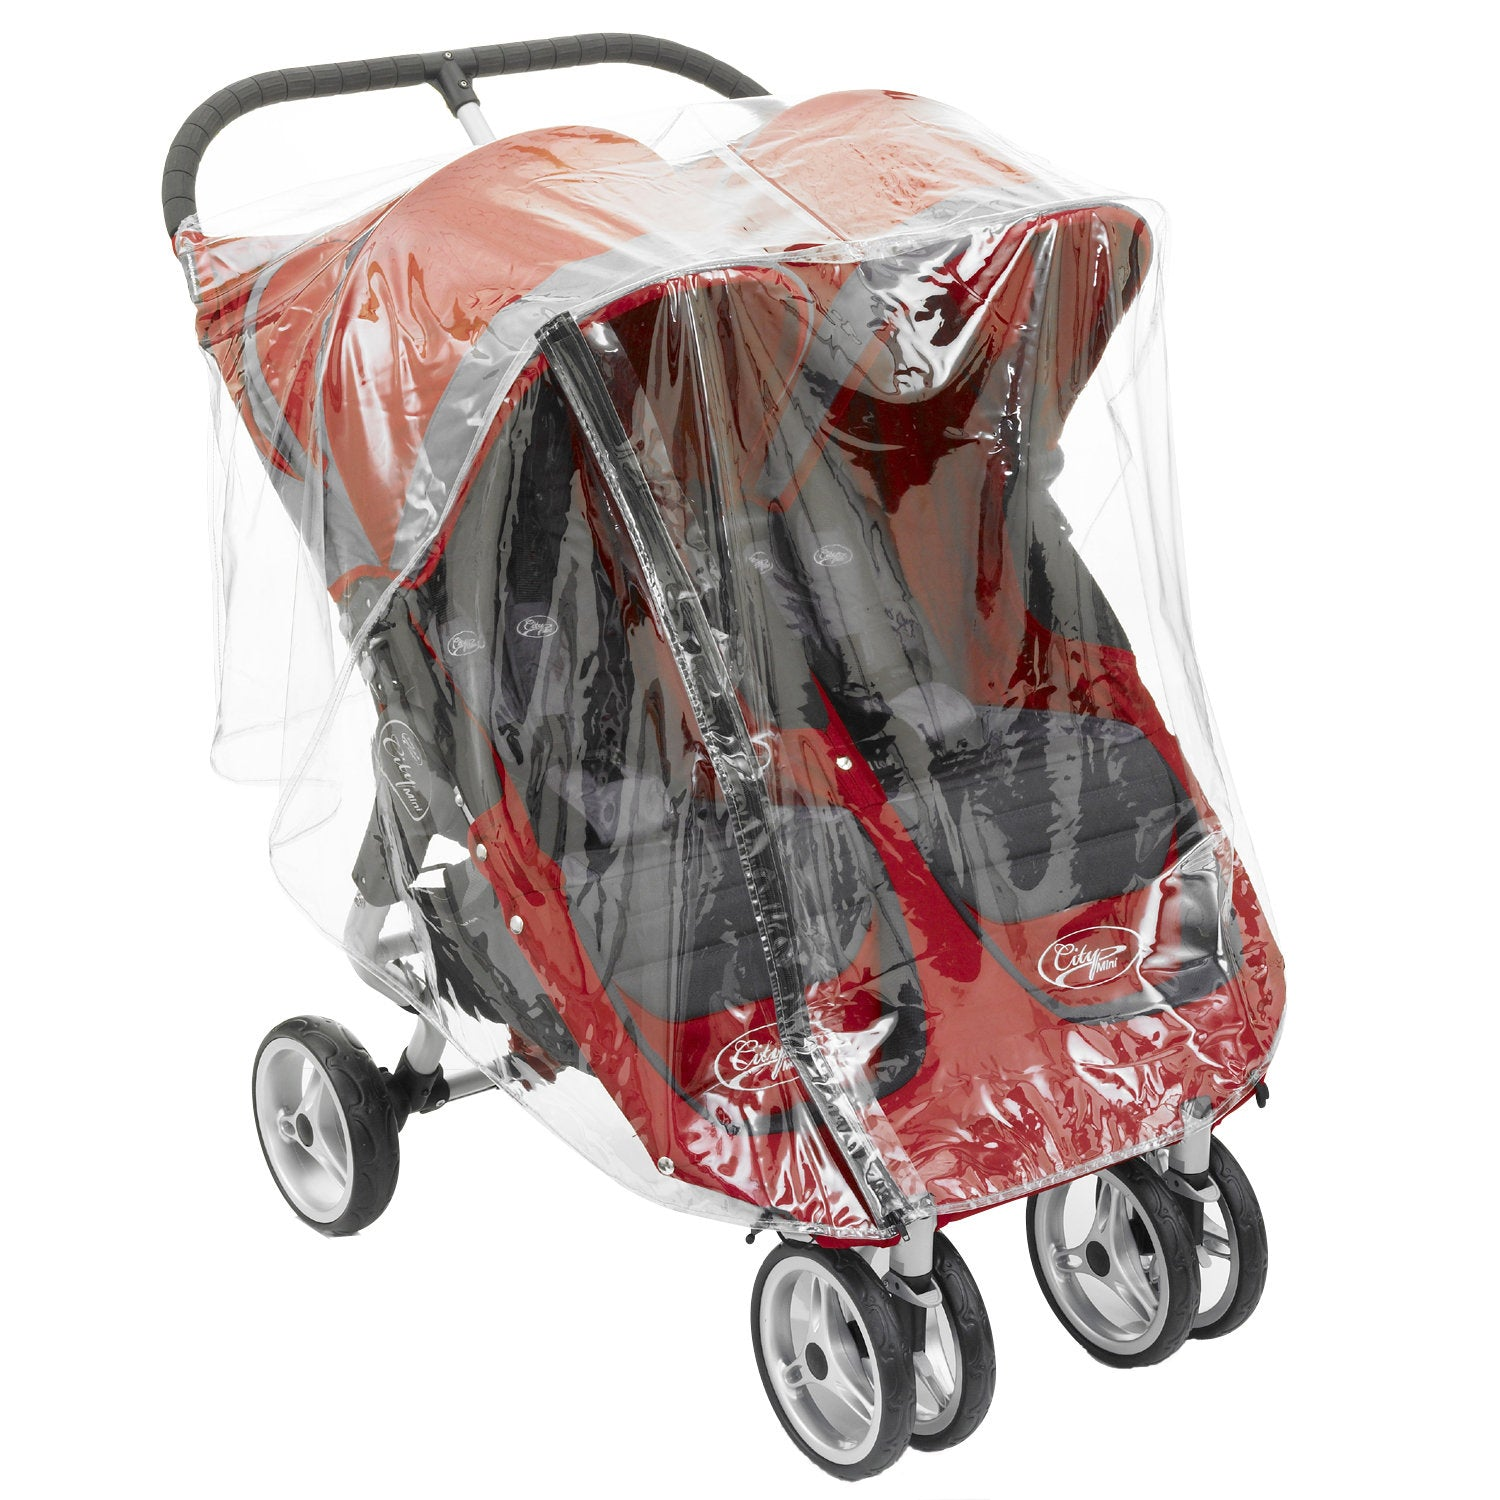 New RAINCOVER PVC Zipped to fit Babystyle Lux Carrycot /& Pushchair Seat Unit